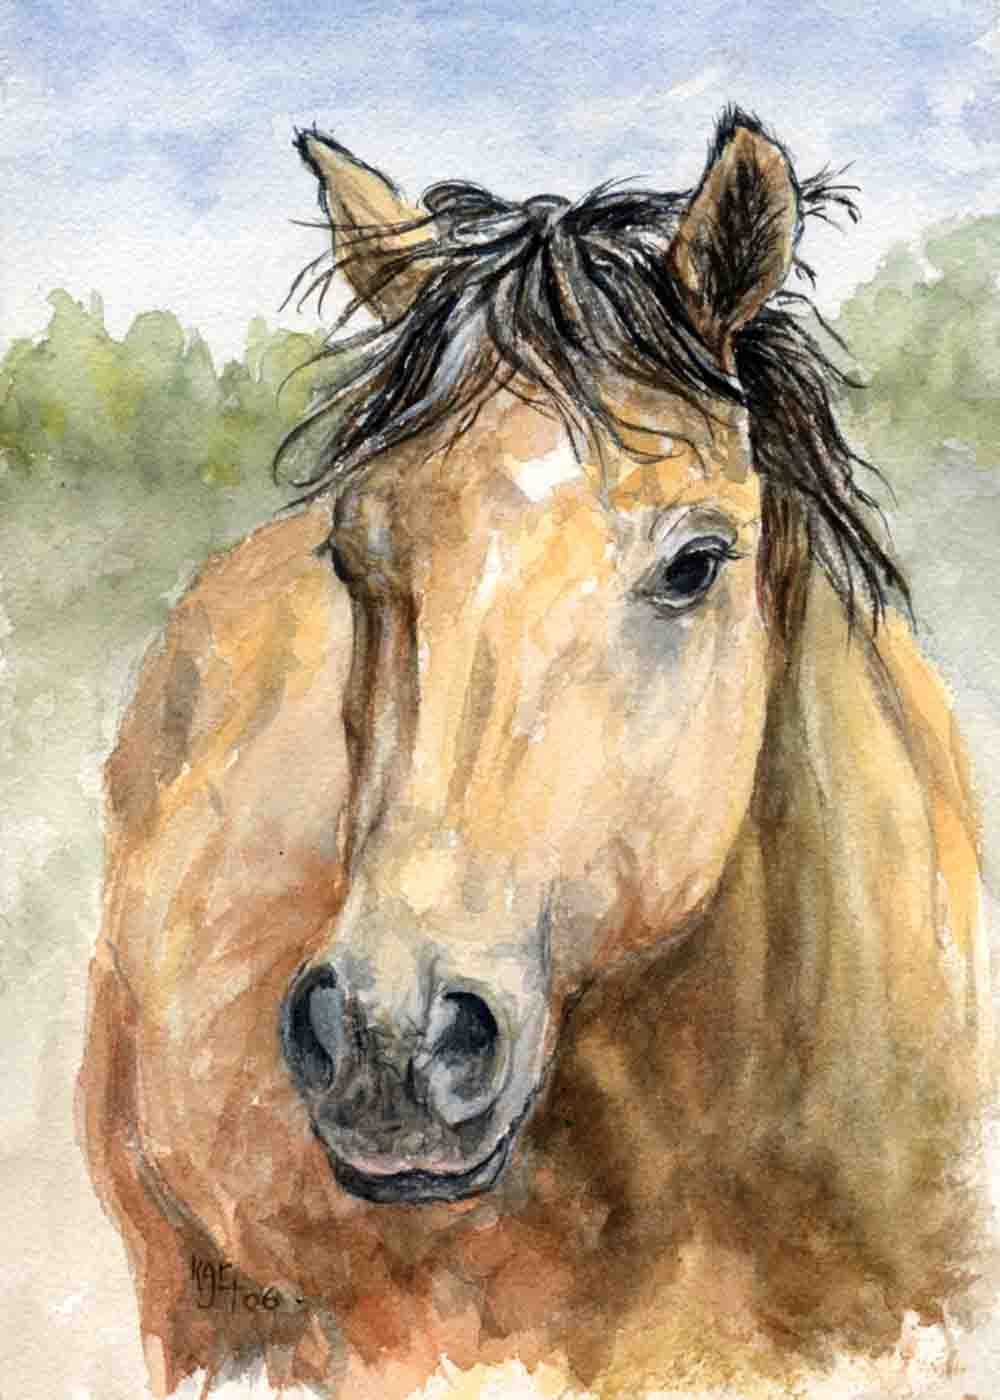 This pretty buckskin mare reminds me of Dale Evans horse - Buttermilk - Sugar is a 5 x 7 inch print of my original watercolor painting